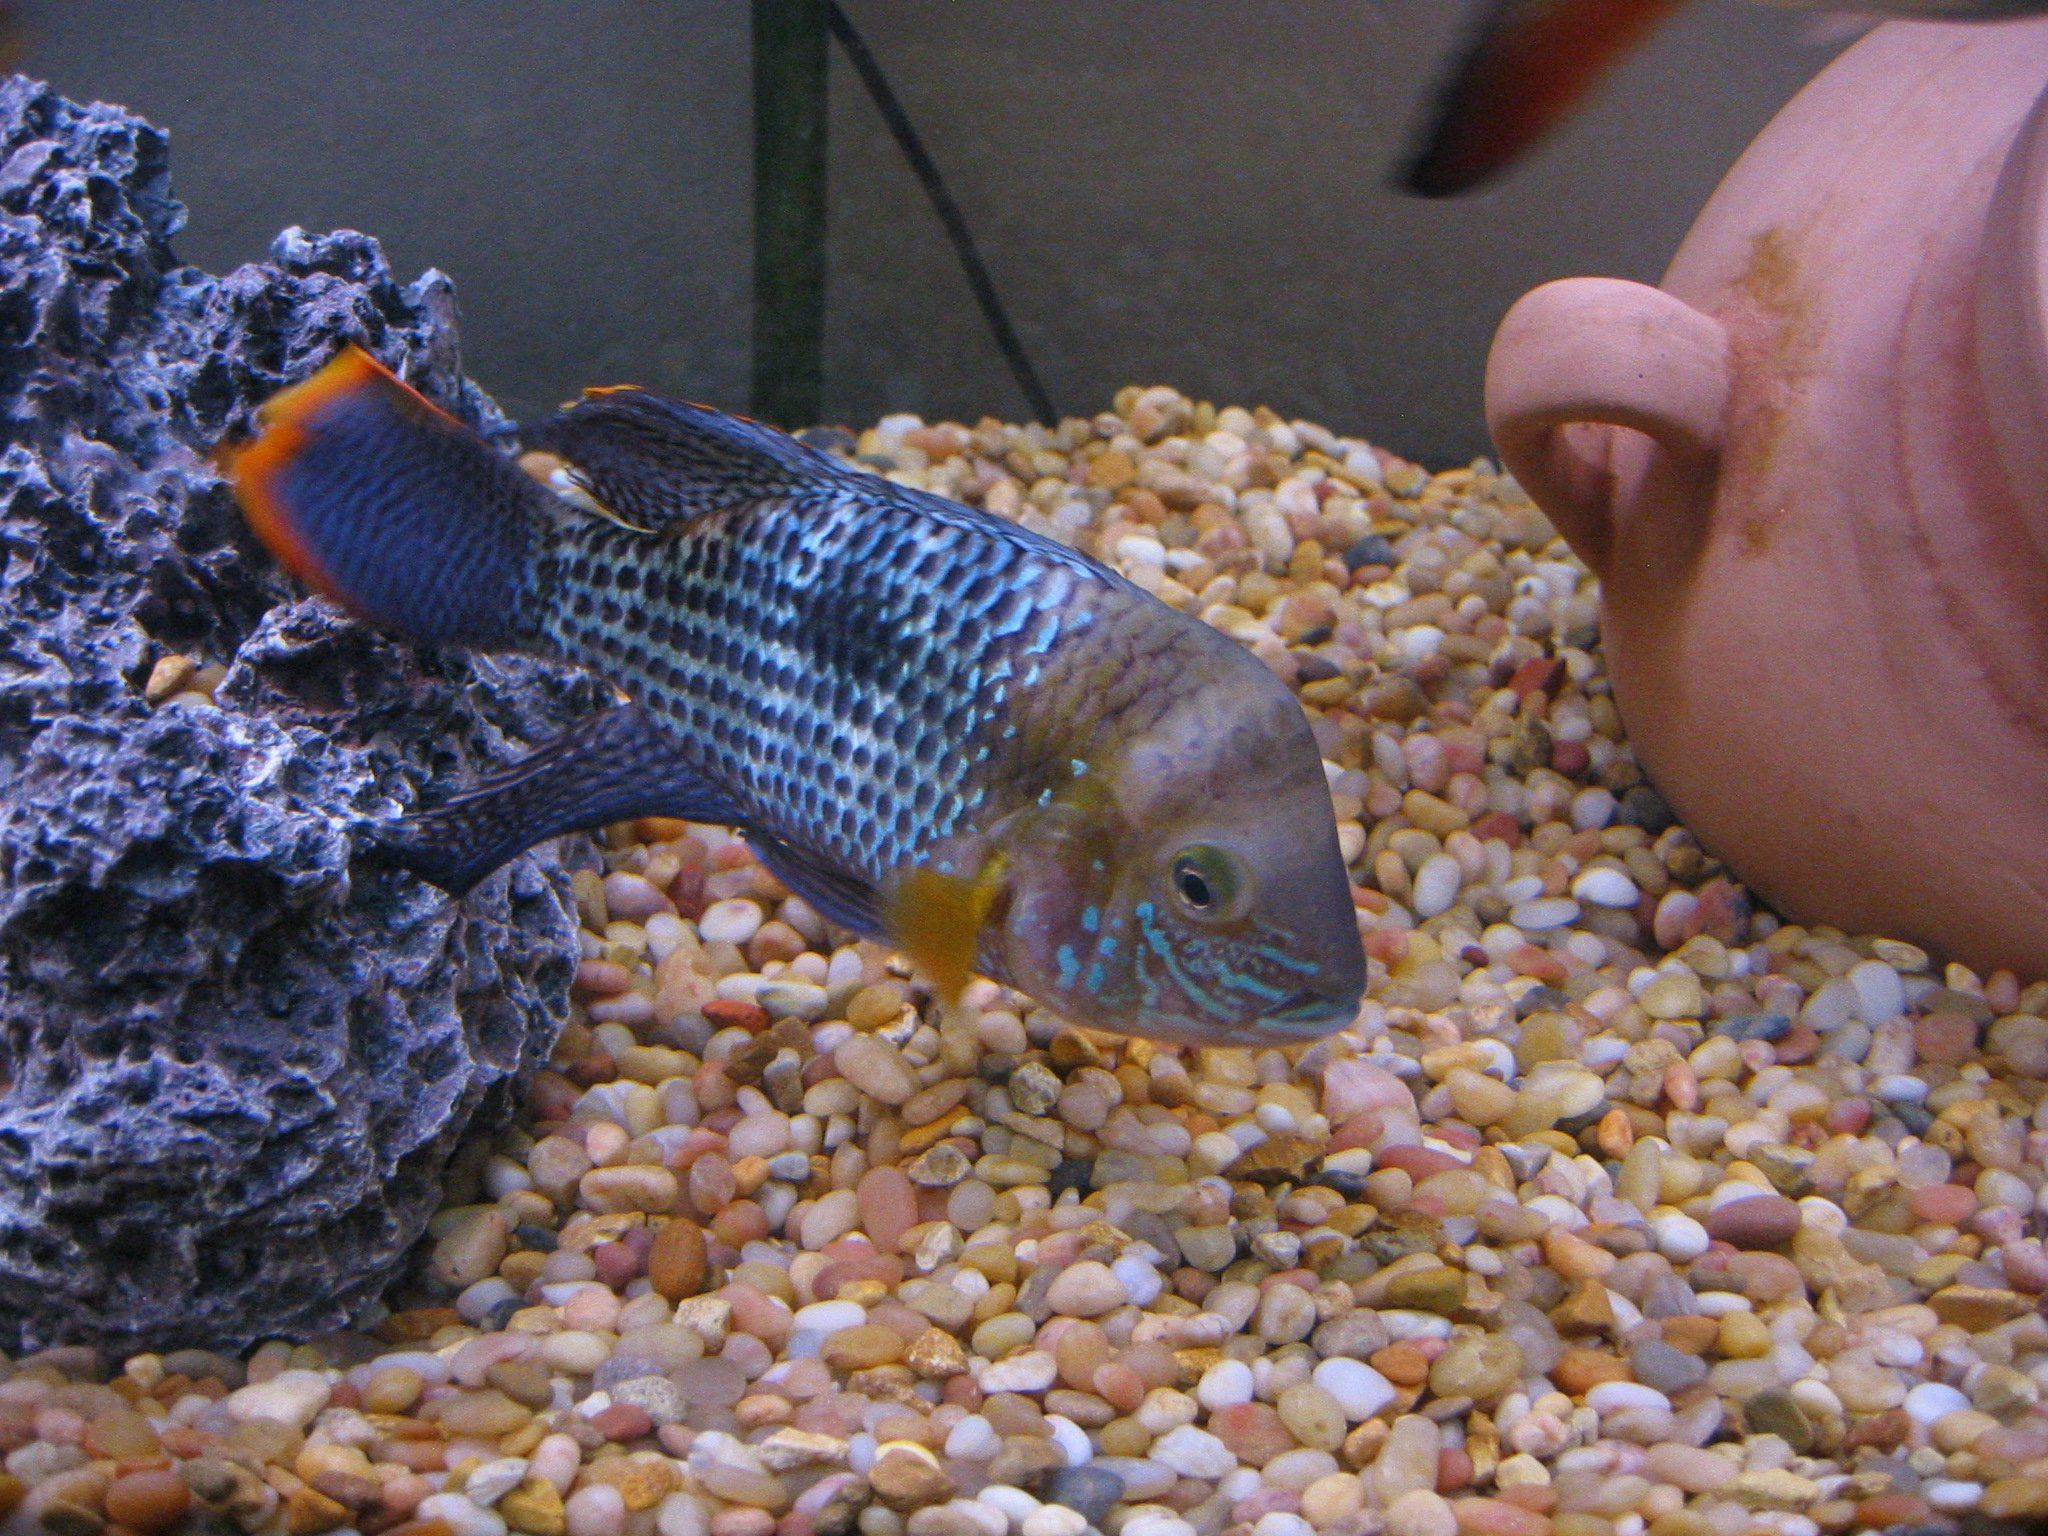 Live Exotic Animals For Sale Uk